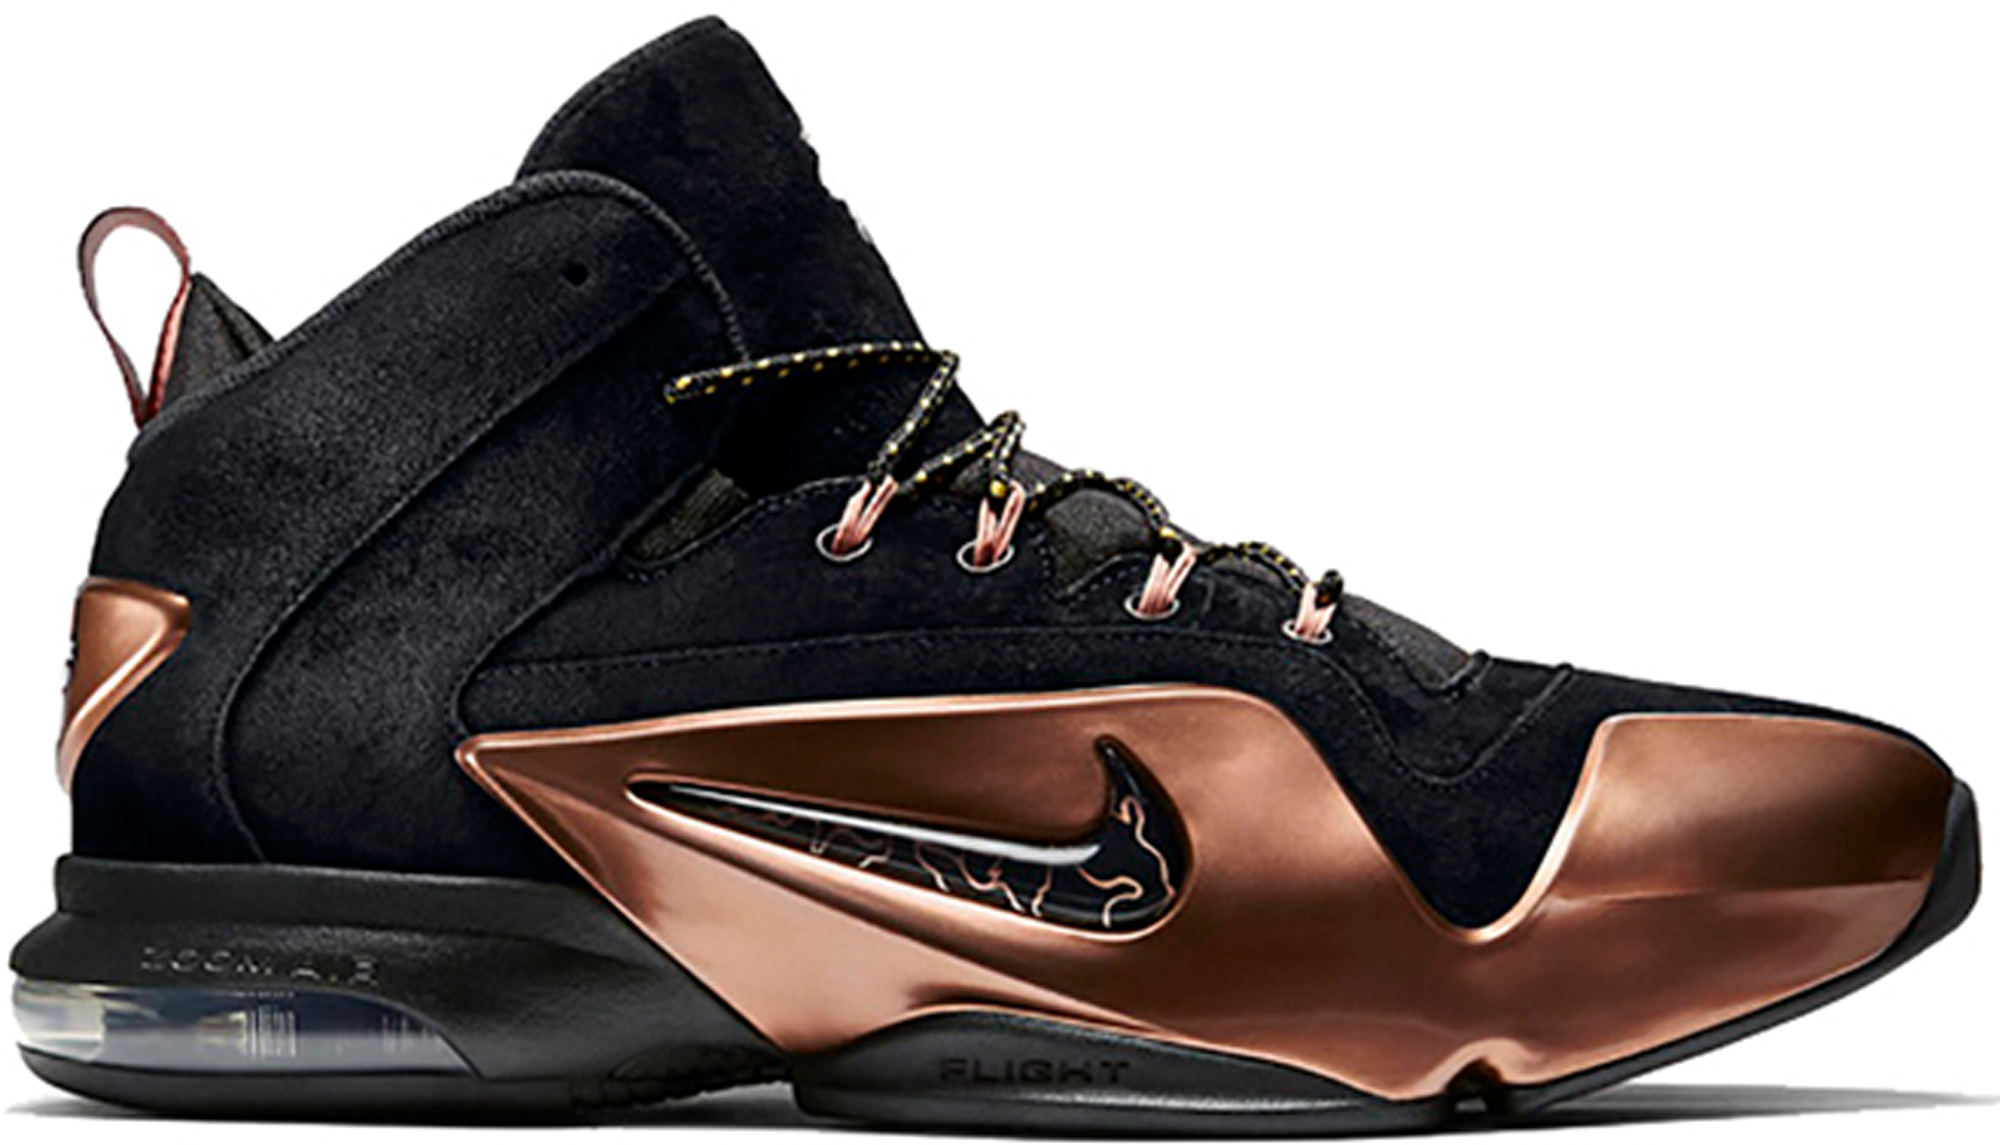 new style 8031b 6b565 09b3c d5433 purchase nike zoom penny 6 copper c7d7e 4ca66